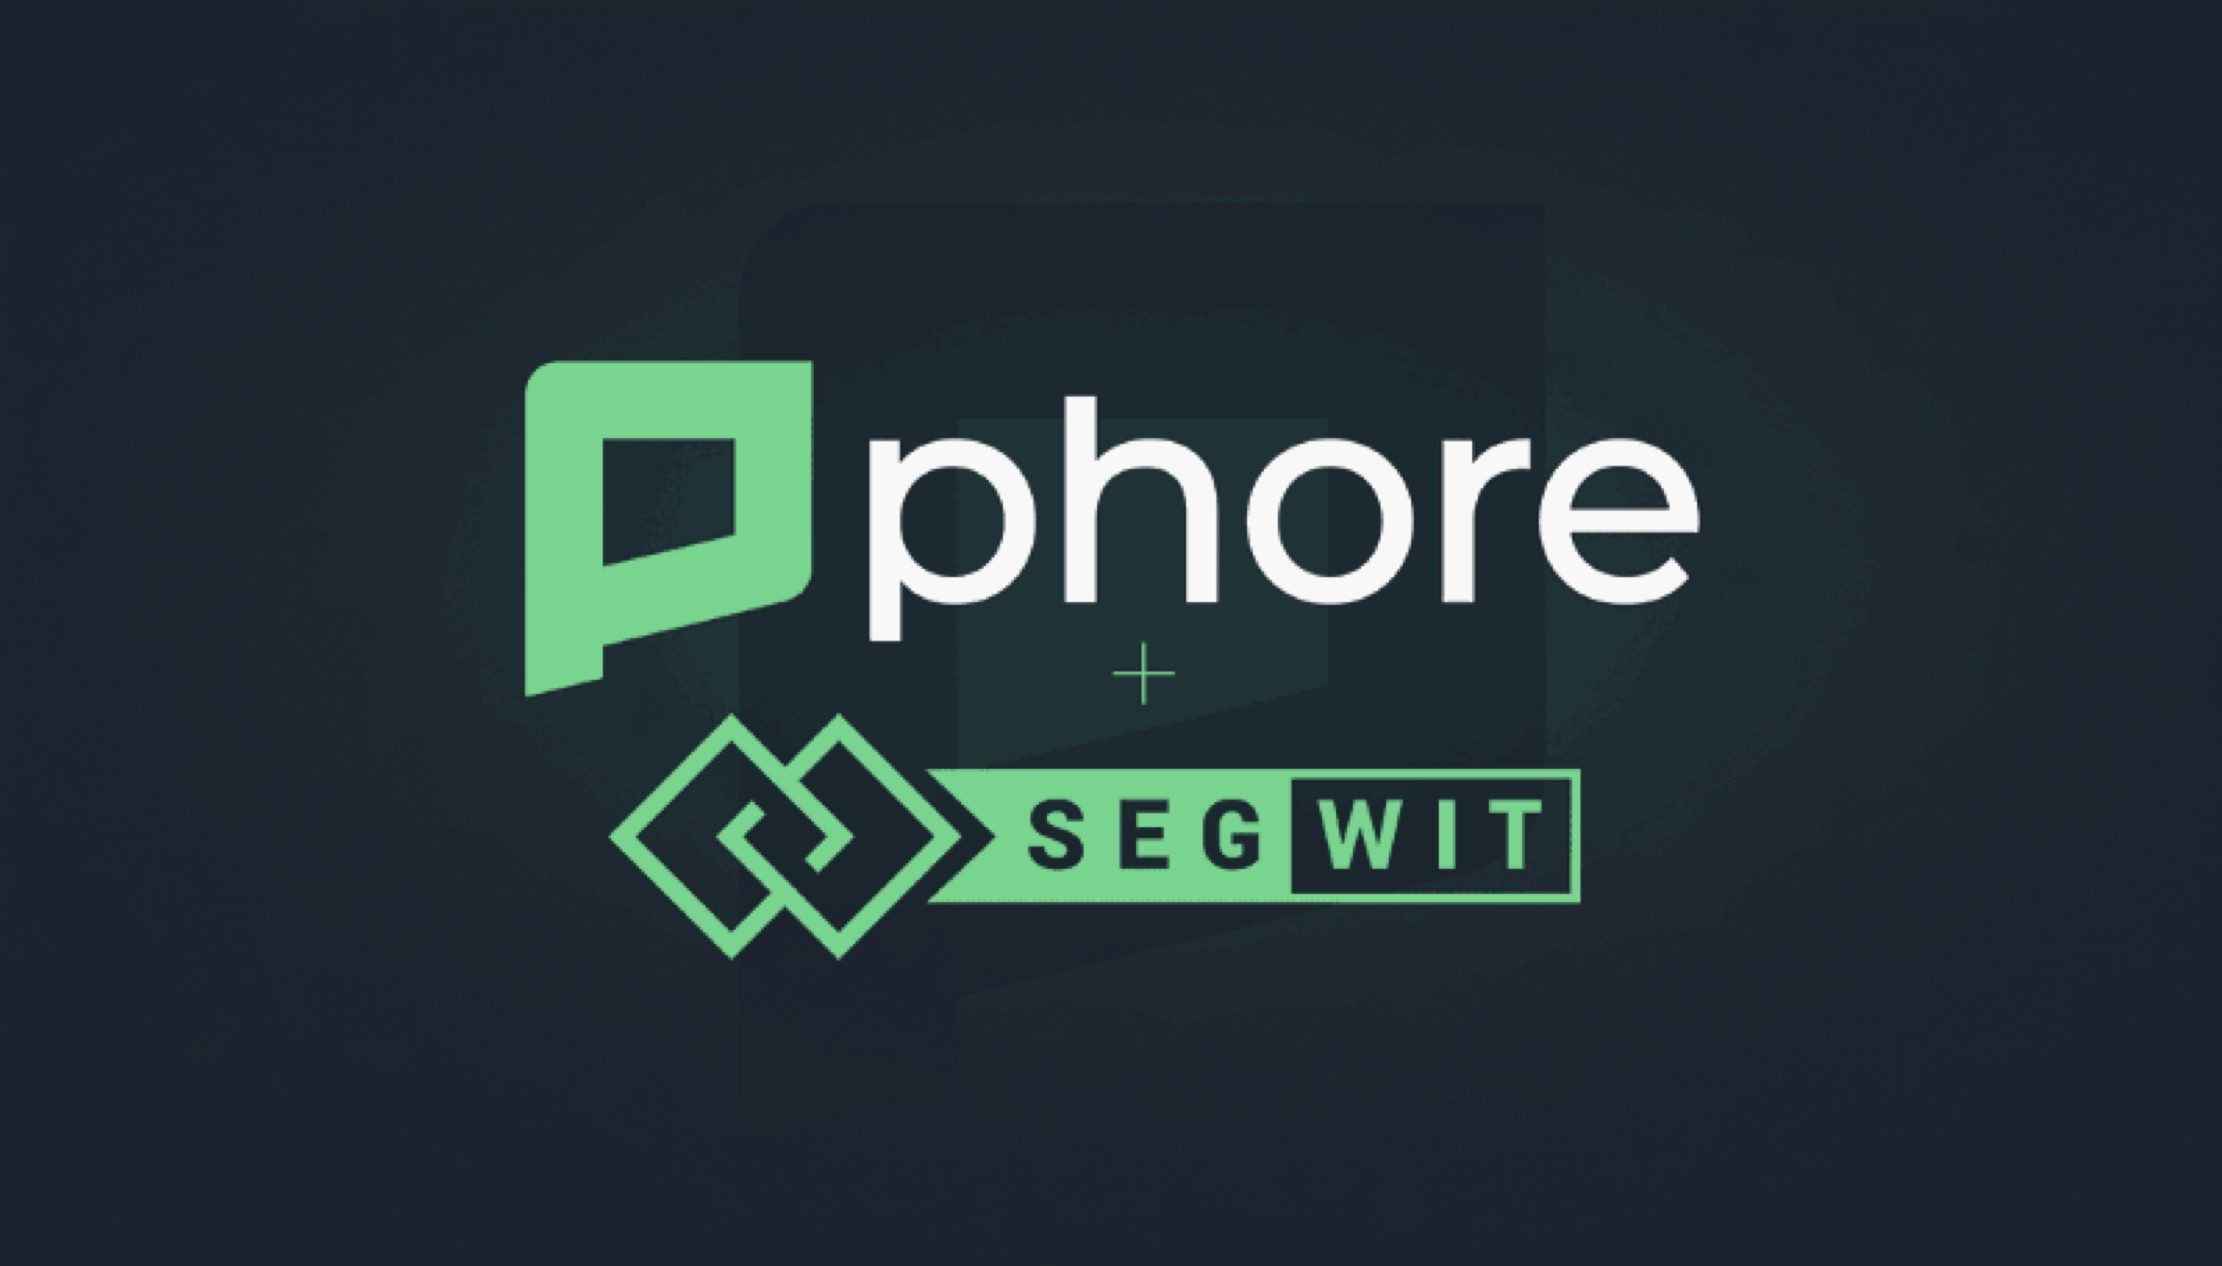 Phore Blockchain Releases Segregated Witness —  A First for Proof of Stake Coins with Masternodes